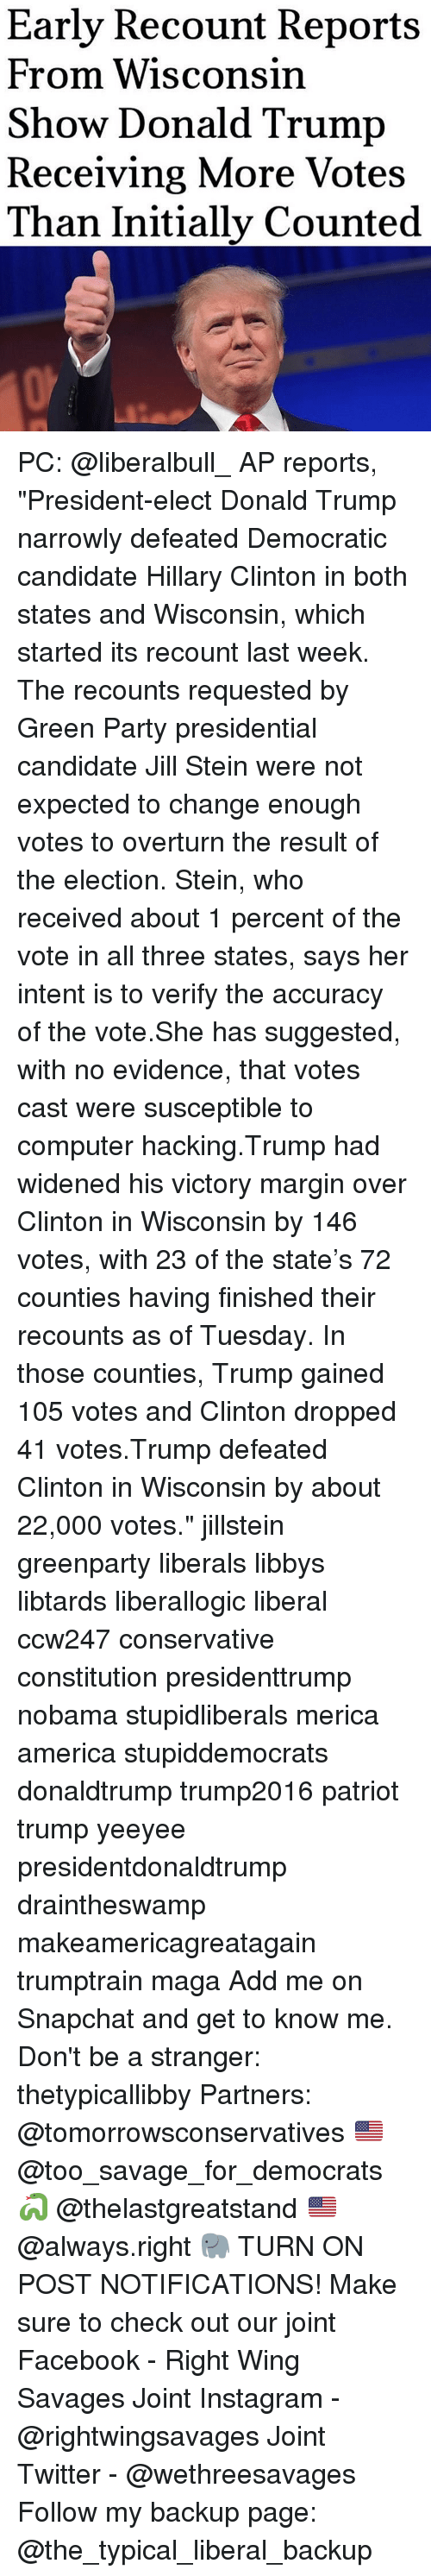 "Vote Trump: Early Recount Reports  From Wisconsin  Show Donald Trump  Receiving More Votes  Than Initially Counted PC: @liberalbull_ AP reports, ""President-elect Donald Trump narrowly defeated Democratic candidate Hillary Clinton in both states and Wisconsin, which started its recount last week. The recounts requested by Green Party presidential candidate Jill Stein were not expected to change enough votes to overturn the result of the election. Stein, who received about 1 percent of the vote in all three states, says her intent is to verify the accuracy of the vote.She has suggested, with no evidence, that votes cast were susceptible to computer hacking.Trump had widened his victory margin over Clinton in Wisconsin by 146 votes, with 23 of the state's 72 counties having finished their recounts as of Tuesday. In those counties, Trump gained 105 votes and Clinton dropped 41 votes.Trump defeated Clinton in Wisconsin by about 22,000 votes."" jillstein greenparty liberals libbys libtards liberallogic liberal ccw247 conservative constitution presidenttrump nobama stupidliberals merica america stupiddemocrats donaldtrump trump2016 patriot trump yeeyee presidentdonaldtrump draintheswamp makeamericagreatagain trumptrain maga Add me on Snapchat and get to know me. Don't be a stranger: thetypicallibby Partners: @tomorrowsconservatives 🇺🇸 @too_savage_for_democrats 🐍 @thelastgreatstand 🇺🇸 @always.right 🐘 TURN ON POST NOTIFICATIONS! Make sure to check out our joint Facebook - Right Wing Savages Joint Instagram - @rightwingsavages Joint Twitter - @wethreesavages Follow my backup page: @the_typical_liberal_backup"